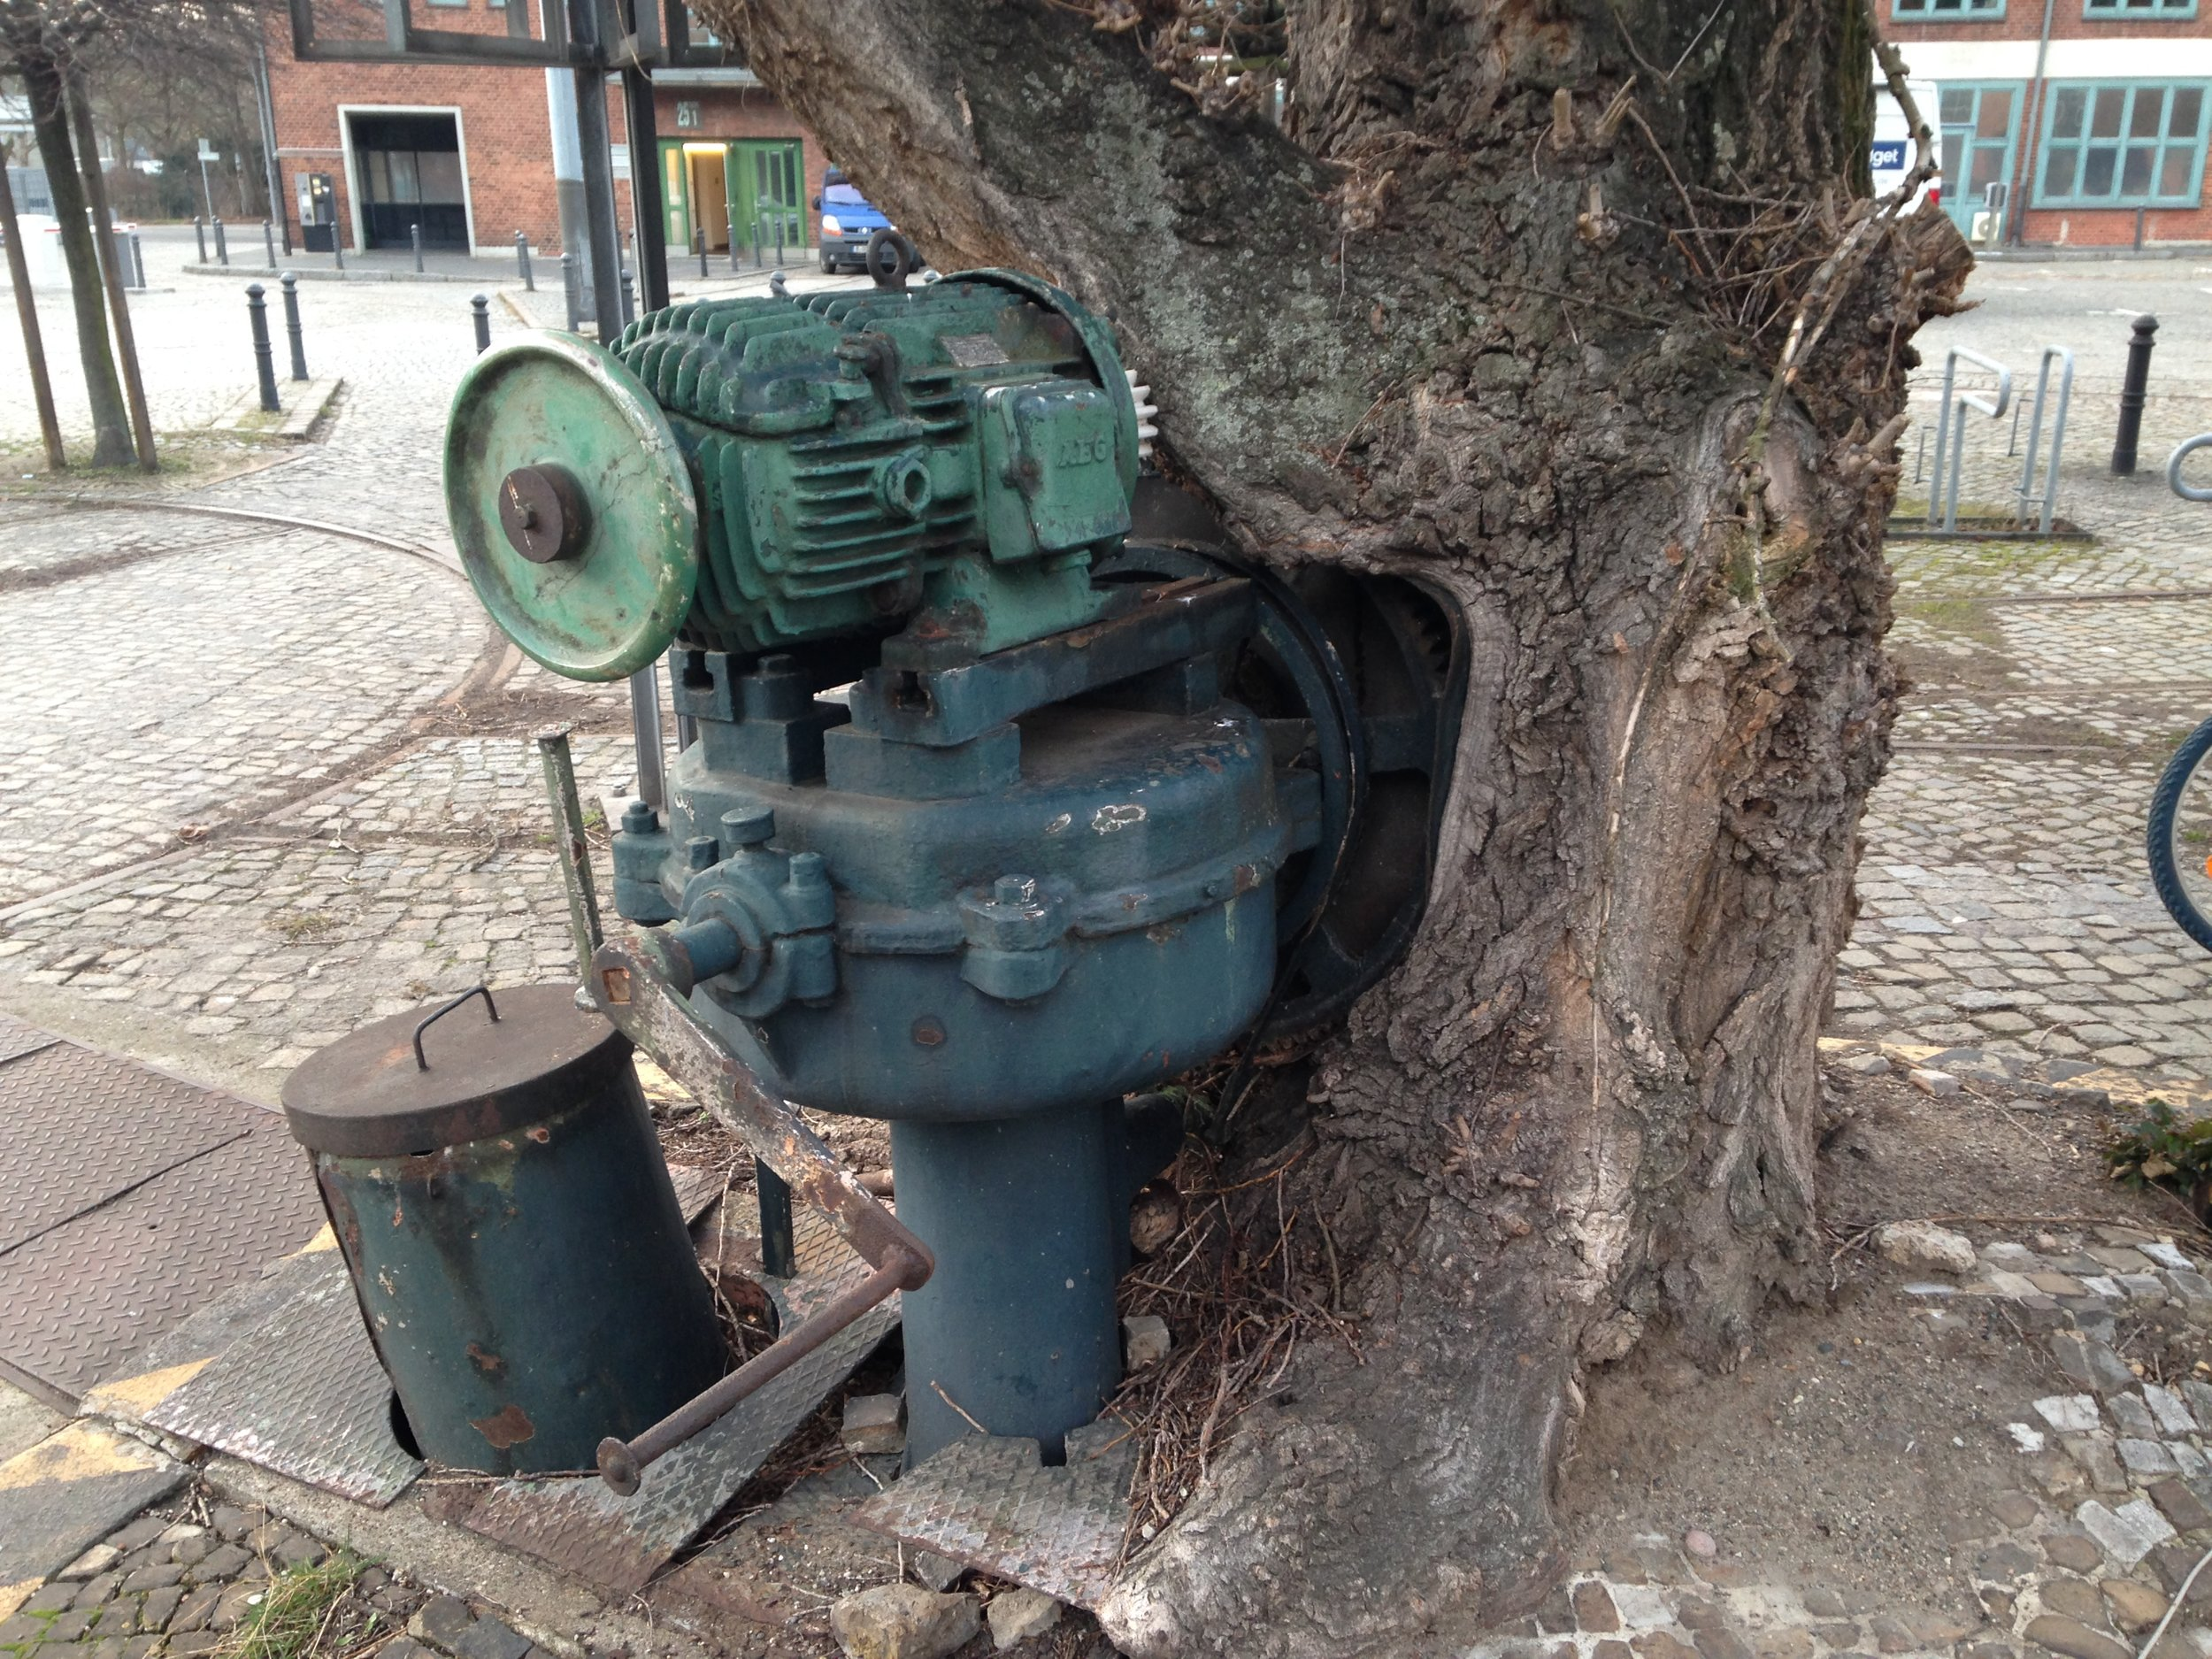 The gearworks for the switching platform, partially absorbed by a tree